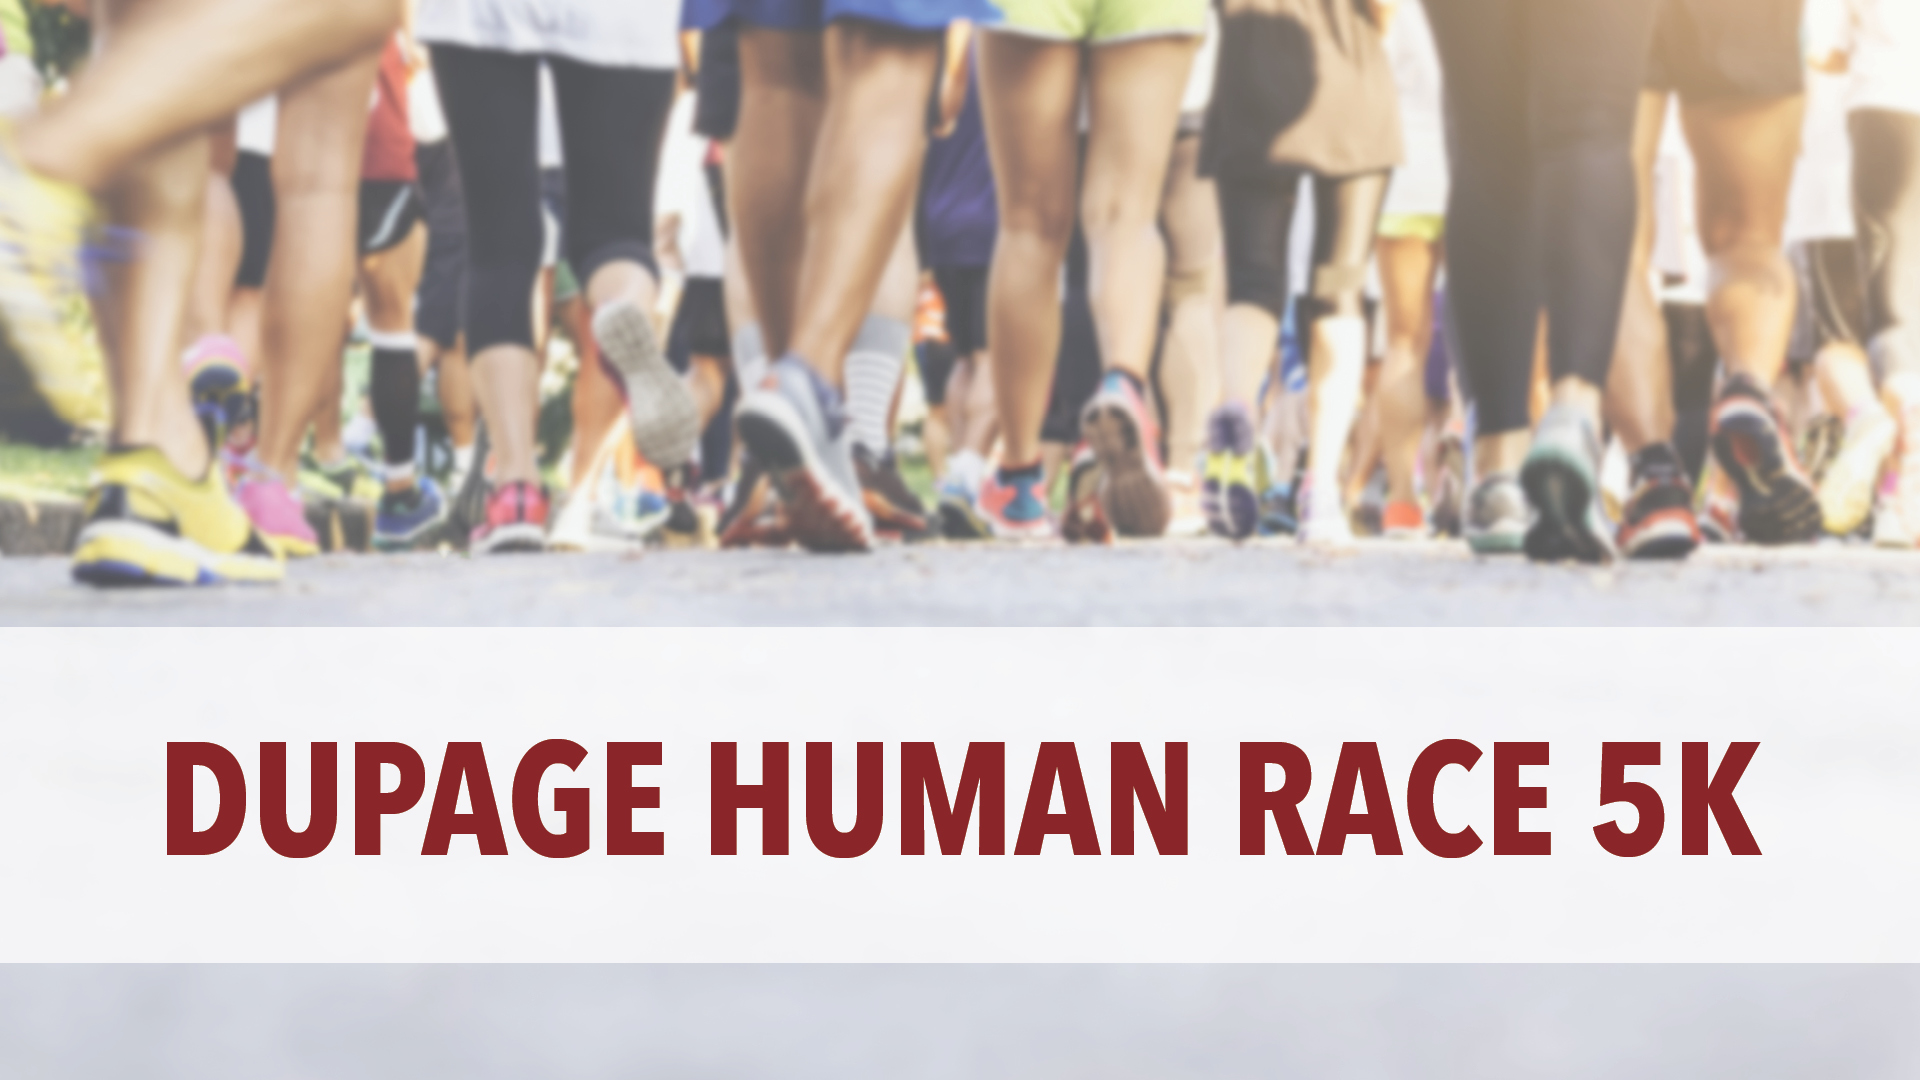 DuPage Human Race 5K